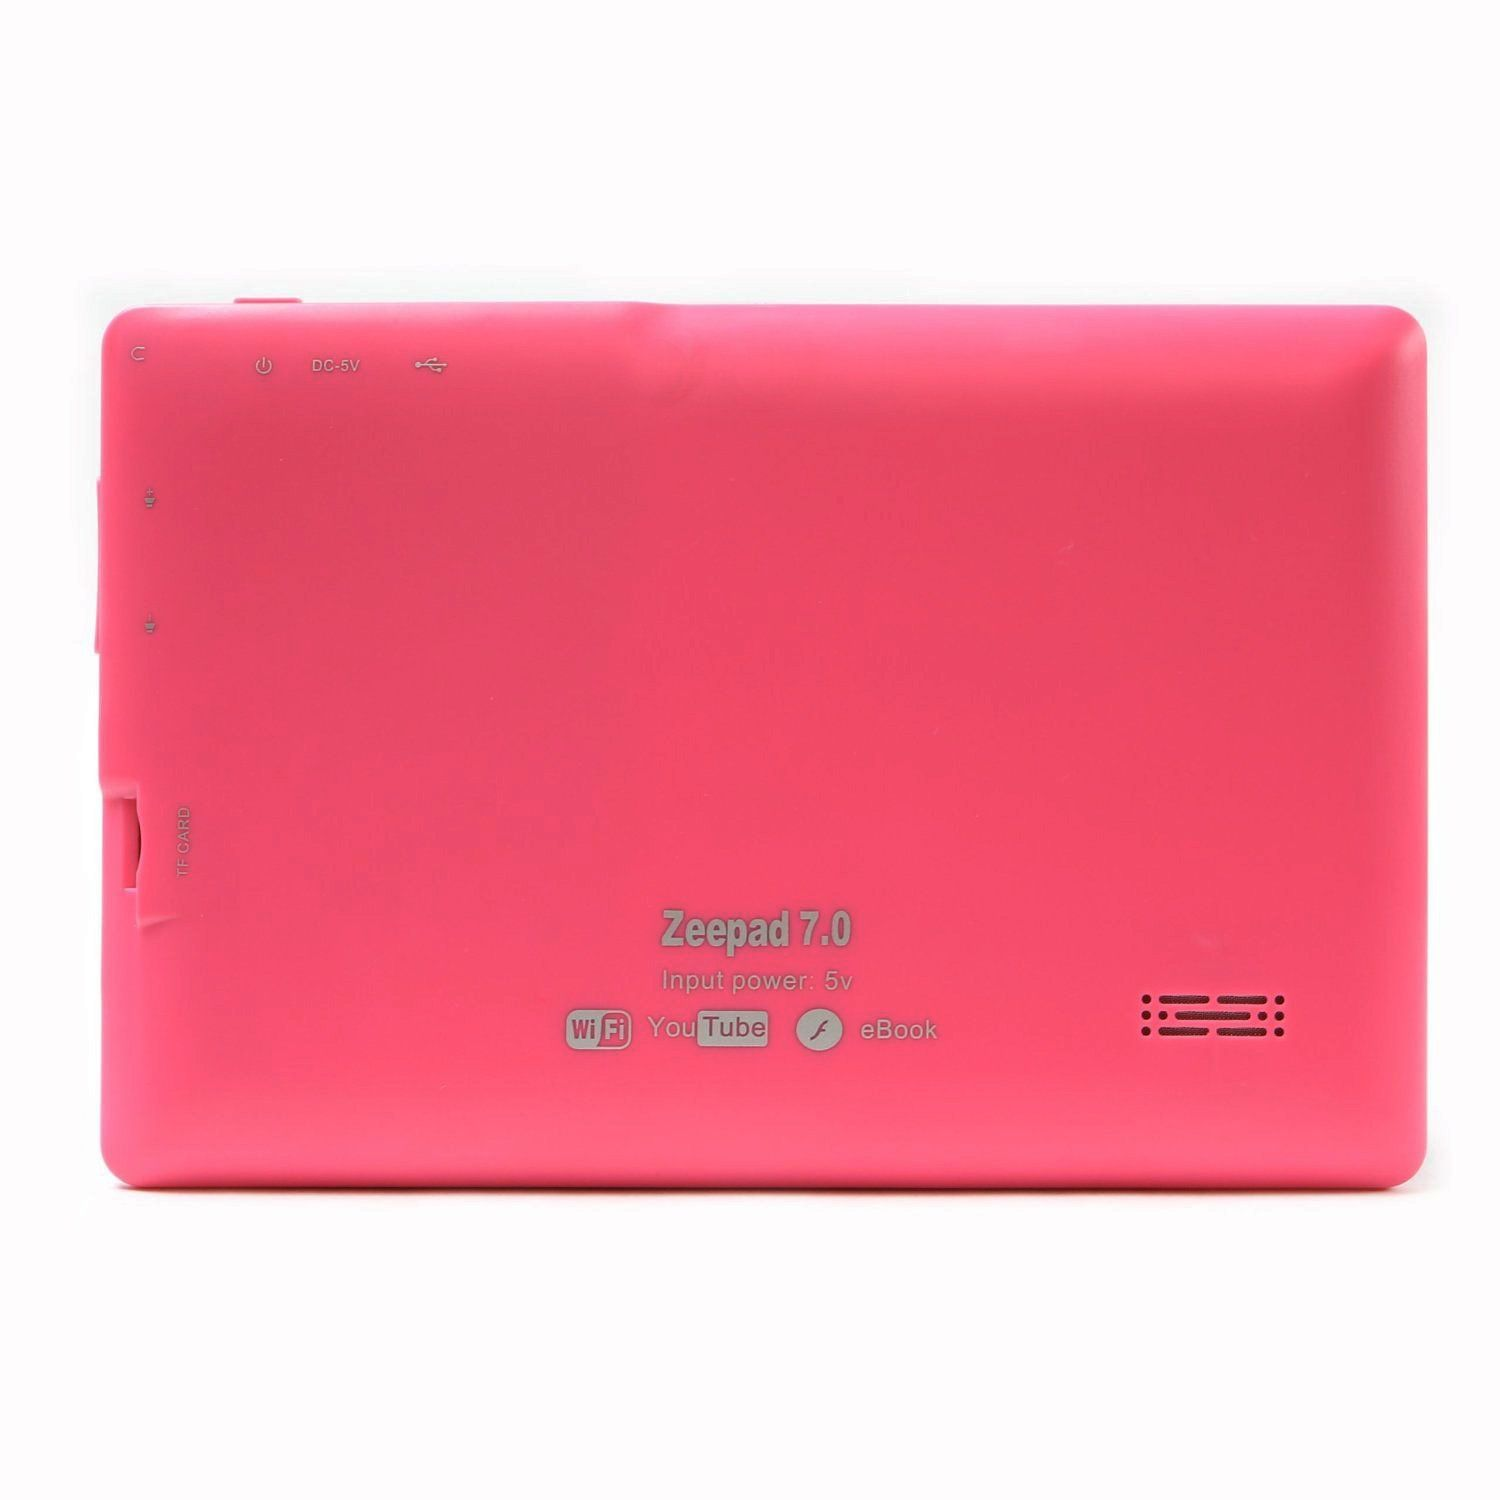 PINK Color 7.0 ZEEPAD(TM) ANDROID 4.0 TABLET PC COMPUTER